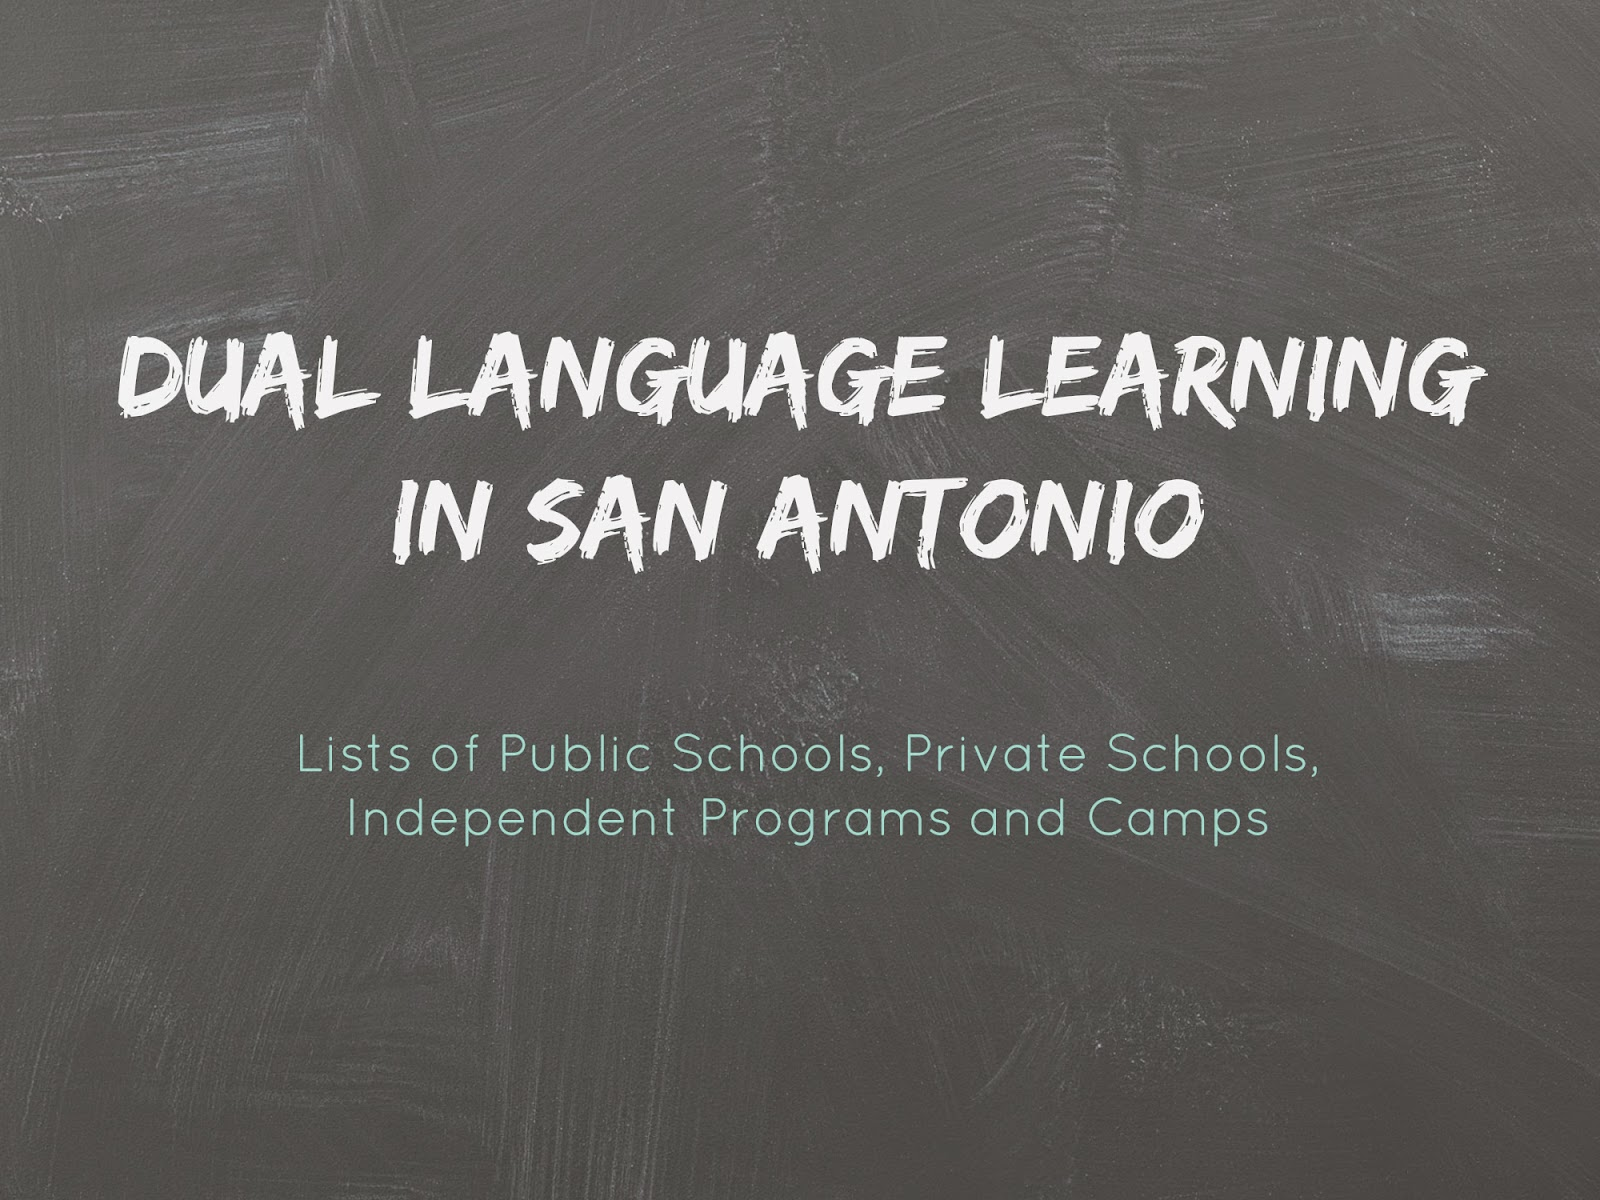 Dual Language Learning in San Antonio, a list of public, private and independent programs.